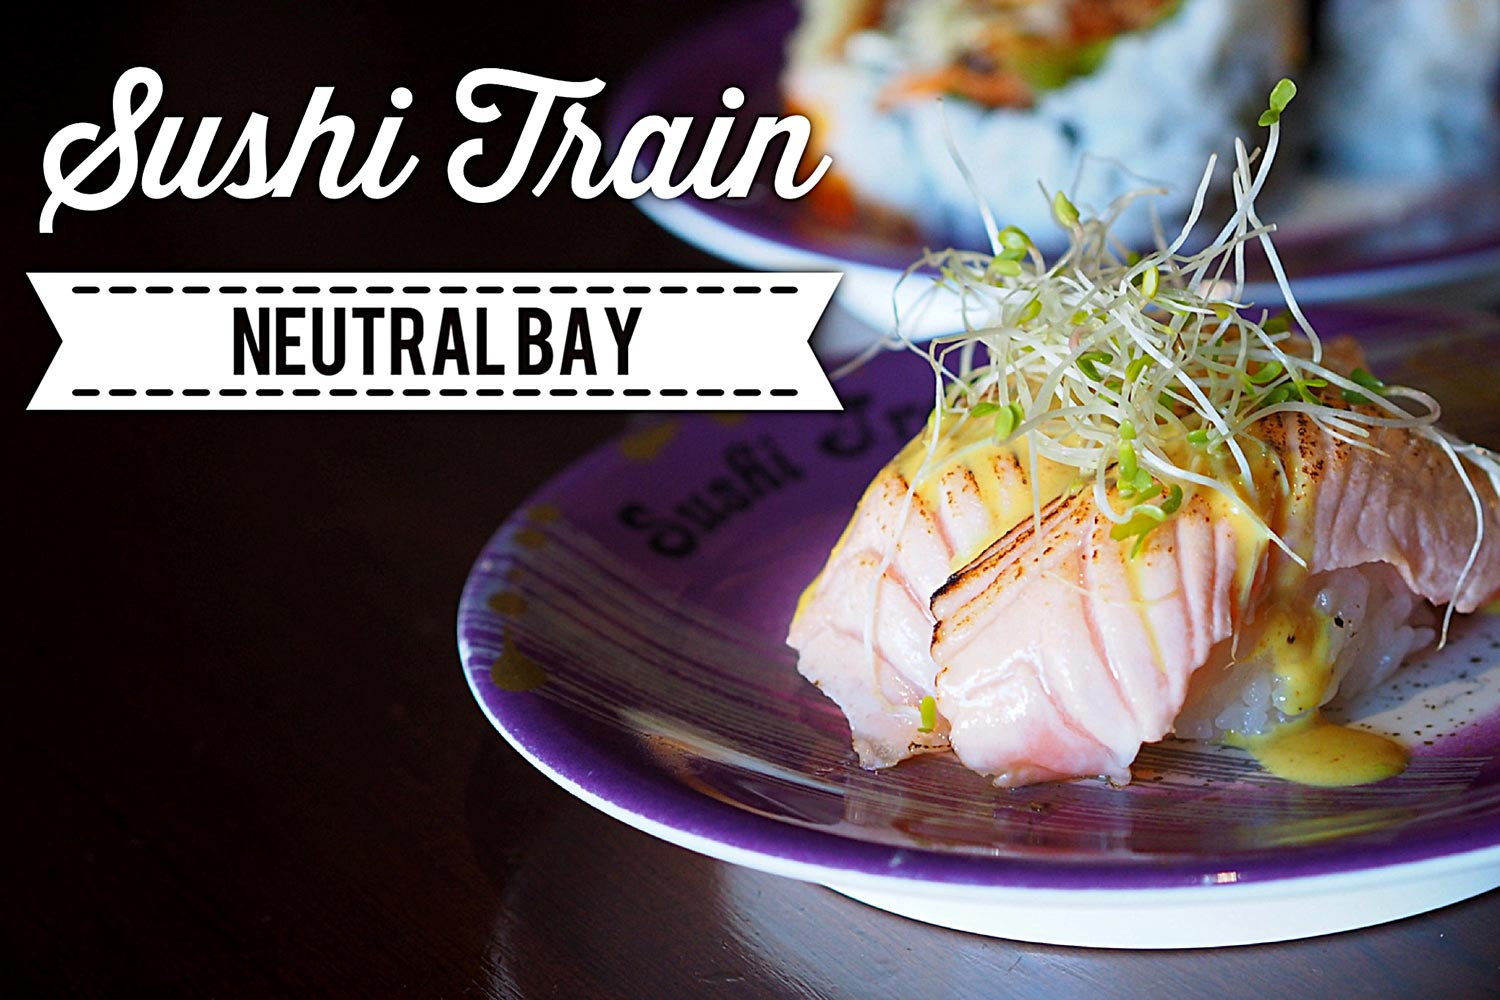 Sydney Food Blog Review of Sushi Train, Neutral Bay